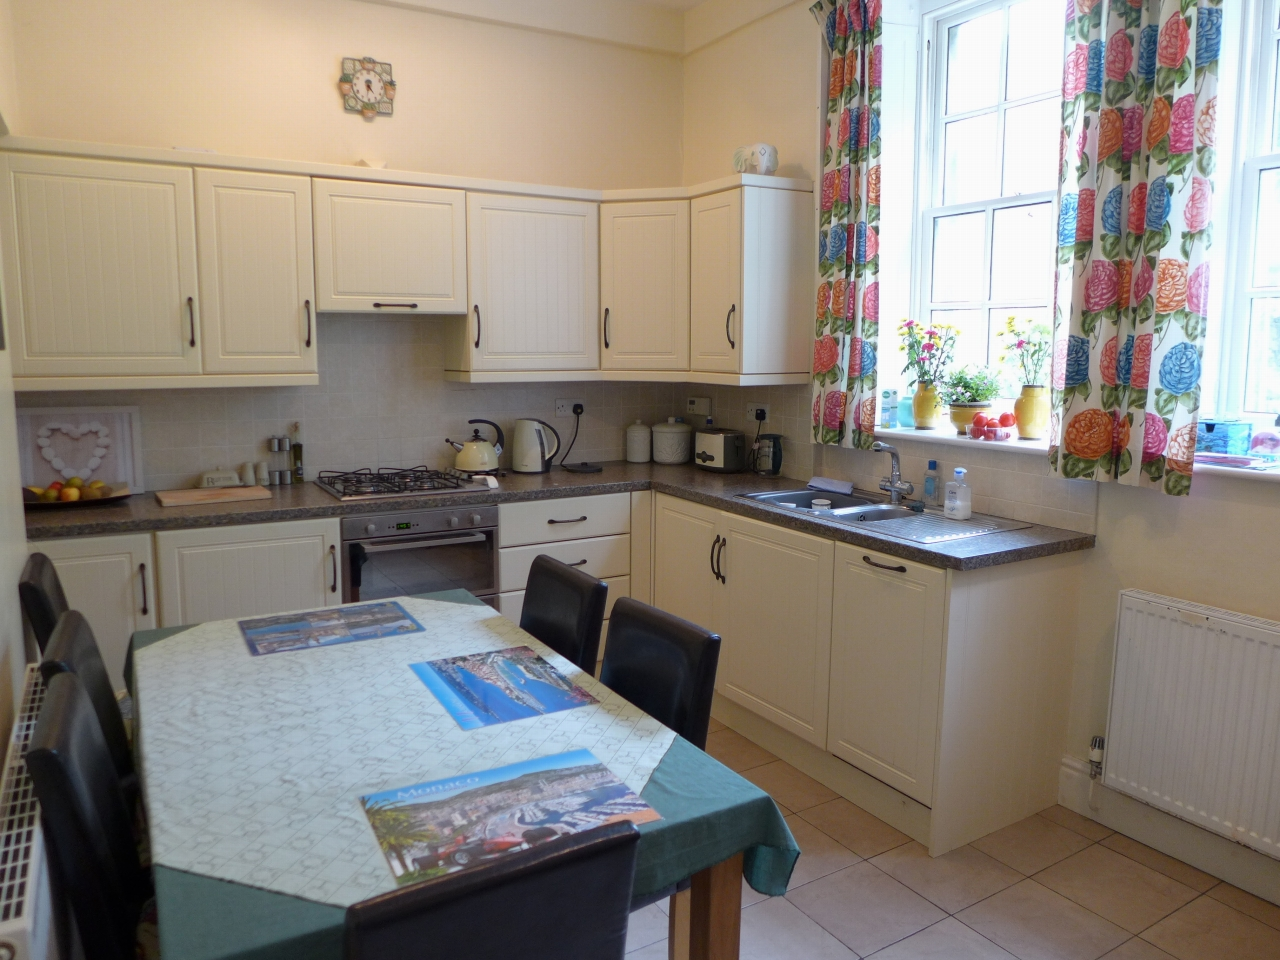 3 bedroom end terraced house For Sale in Calderdale - Photograph 2.